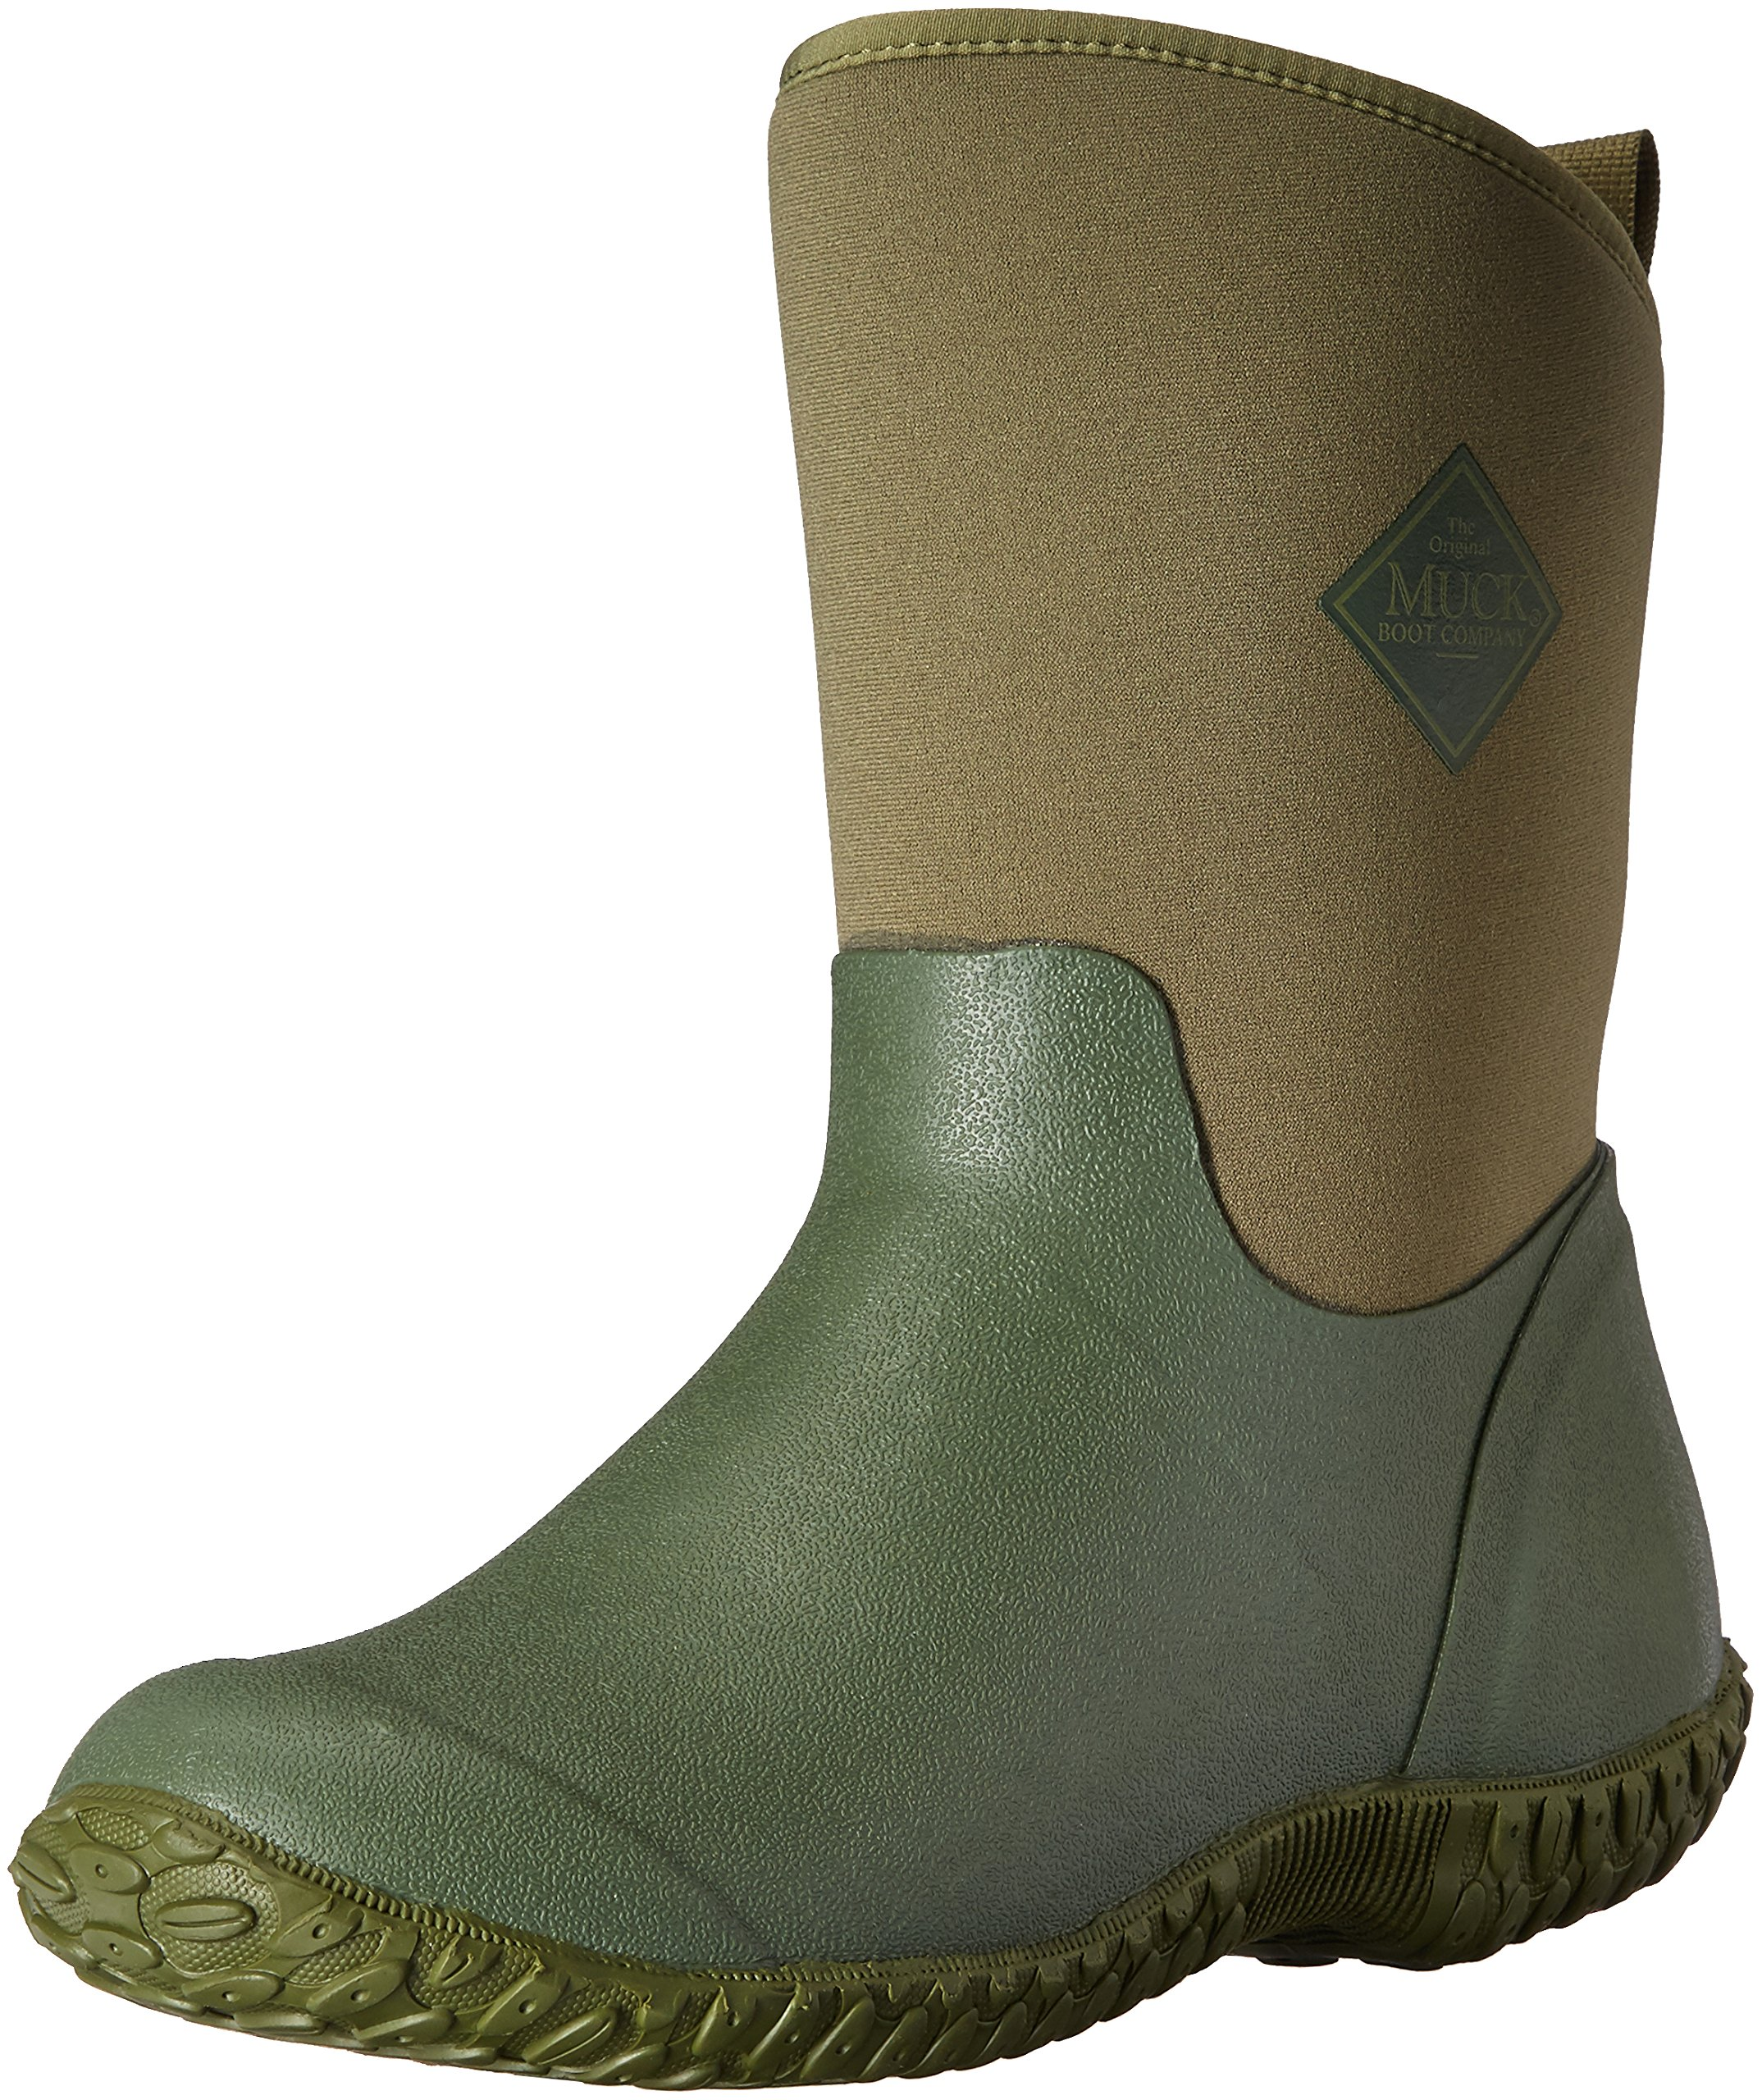 Muck Boot Women's Muckster 2 Mid Snow Boot, Green w/ Floral Print Lining, 9 B US